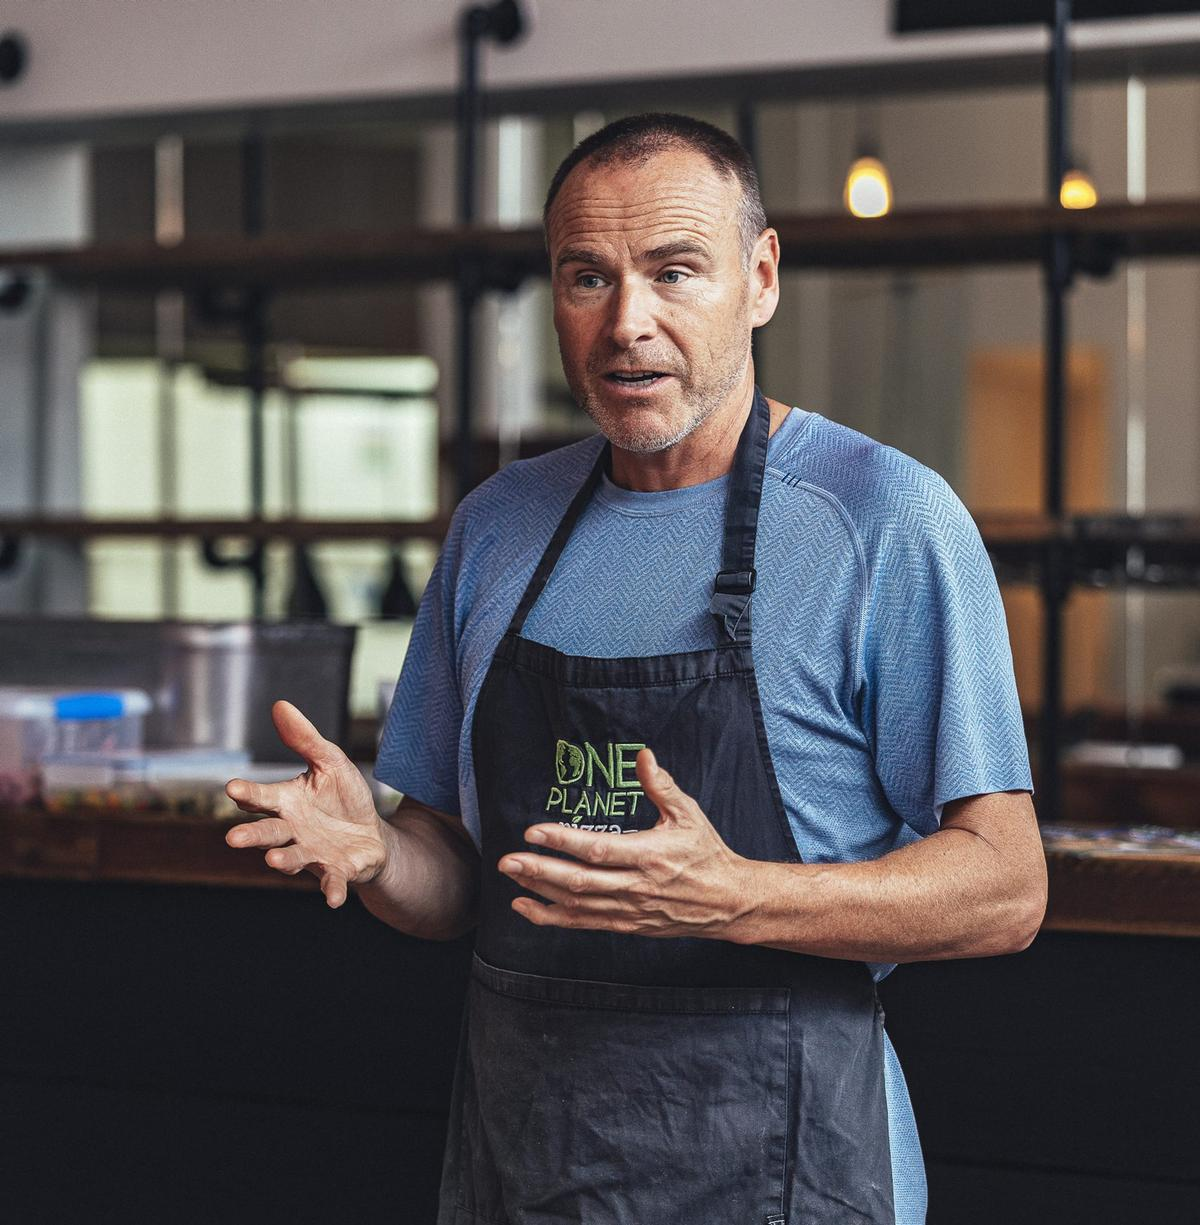 The pizzas will be made available through One Planet Pizza – a vegan food company set up by Leisure-Net founder and co-owner Mike Hill / One Planet Pizza